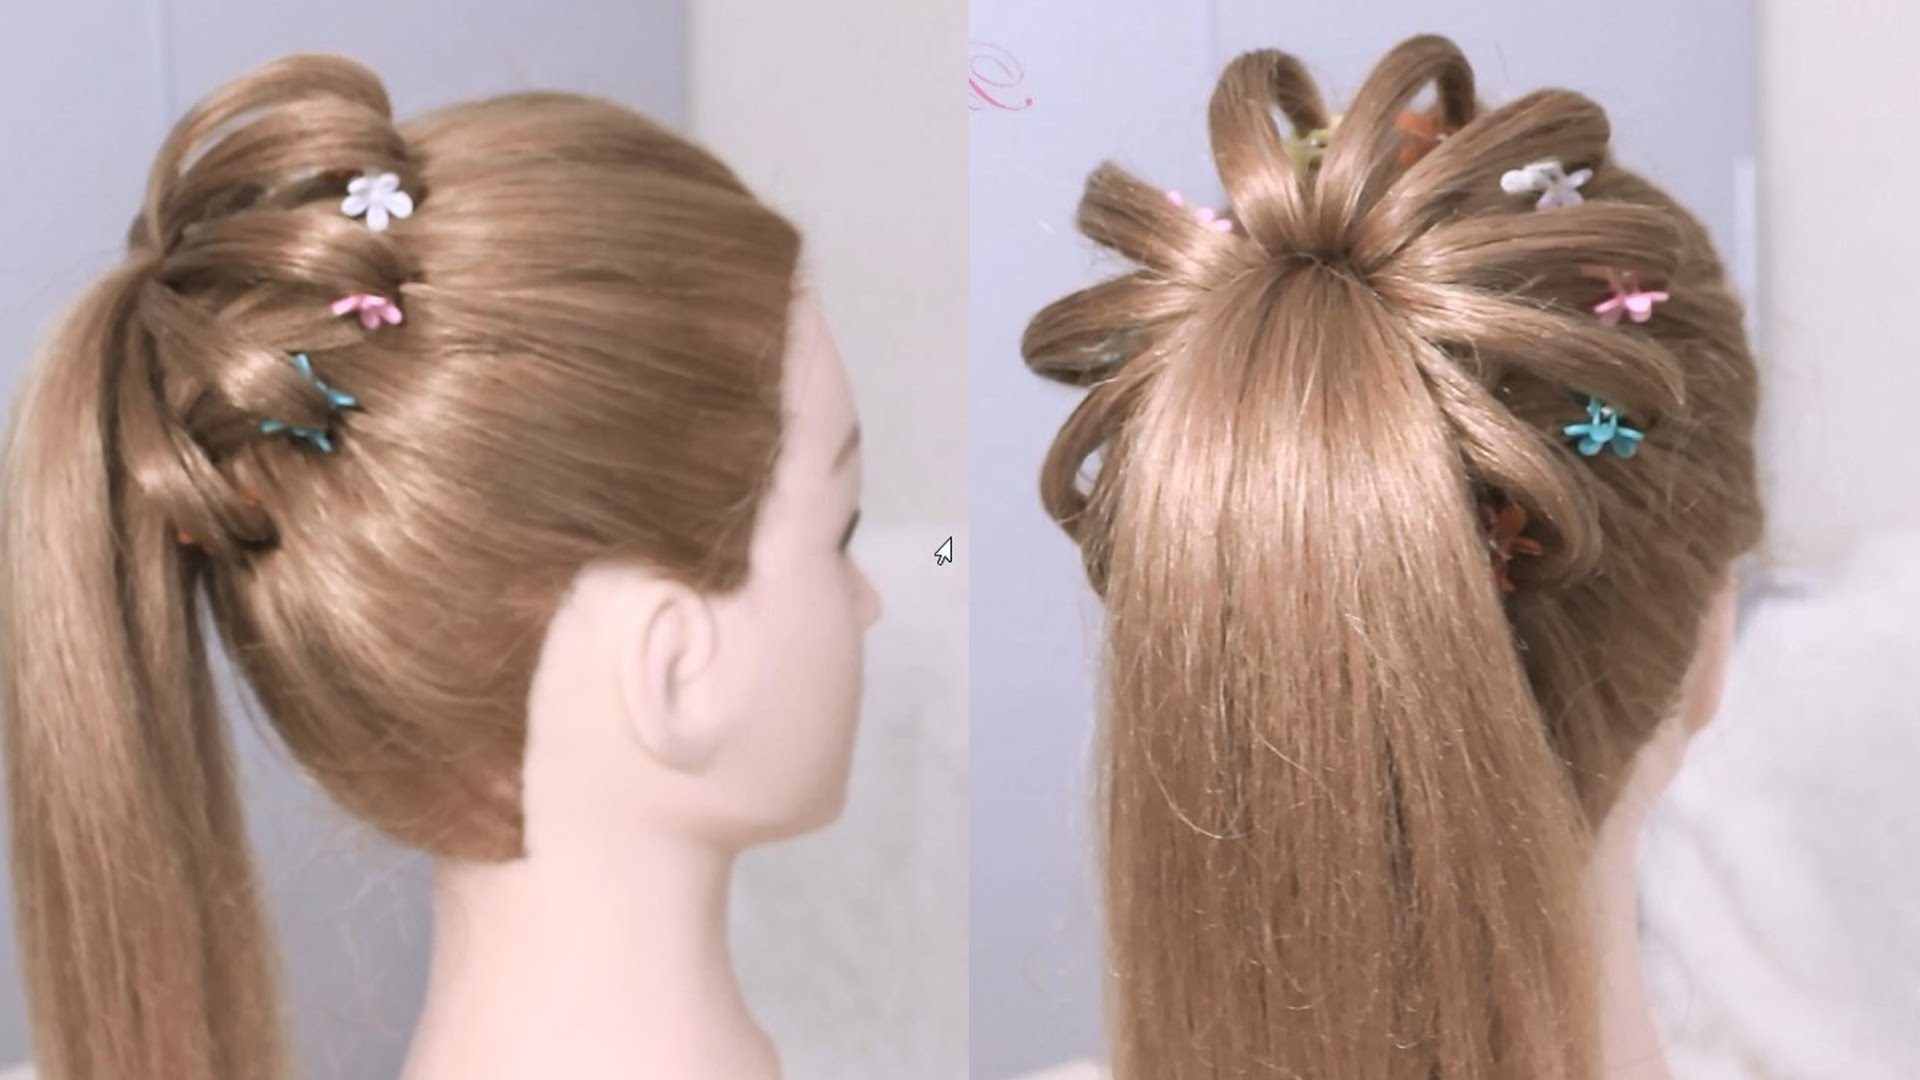 Popular High Ponytail Hairstyles With High Ponytail Hairstyle For Long Hair / Braided Ponytail Tutorial (View 14 of 20)